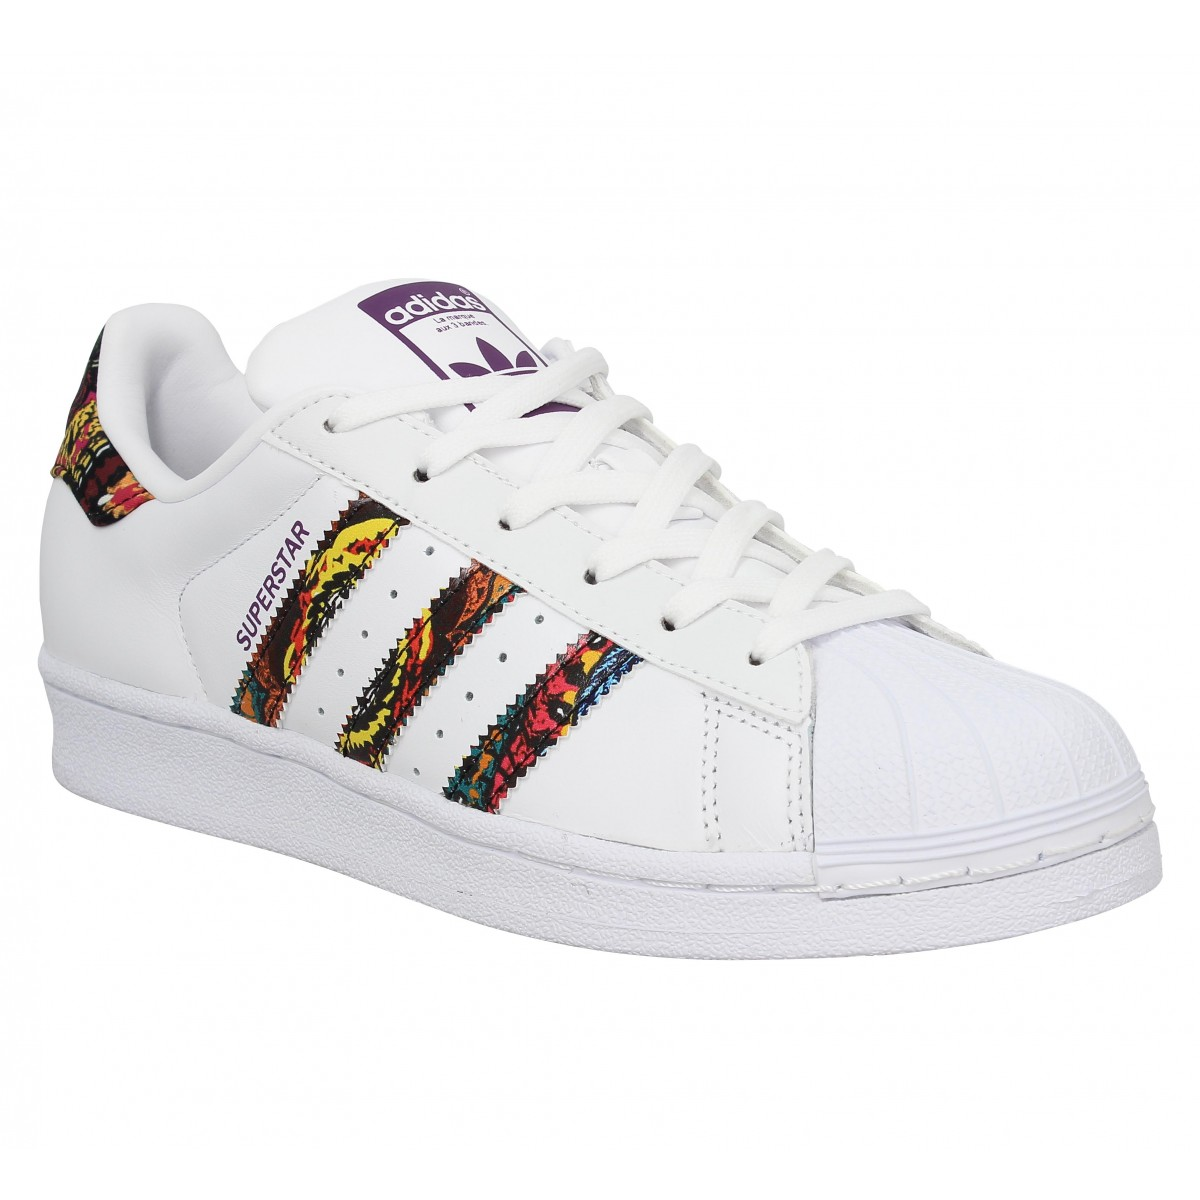 Baskets ADIDAS Superstar Blanc Pourpre